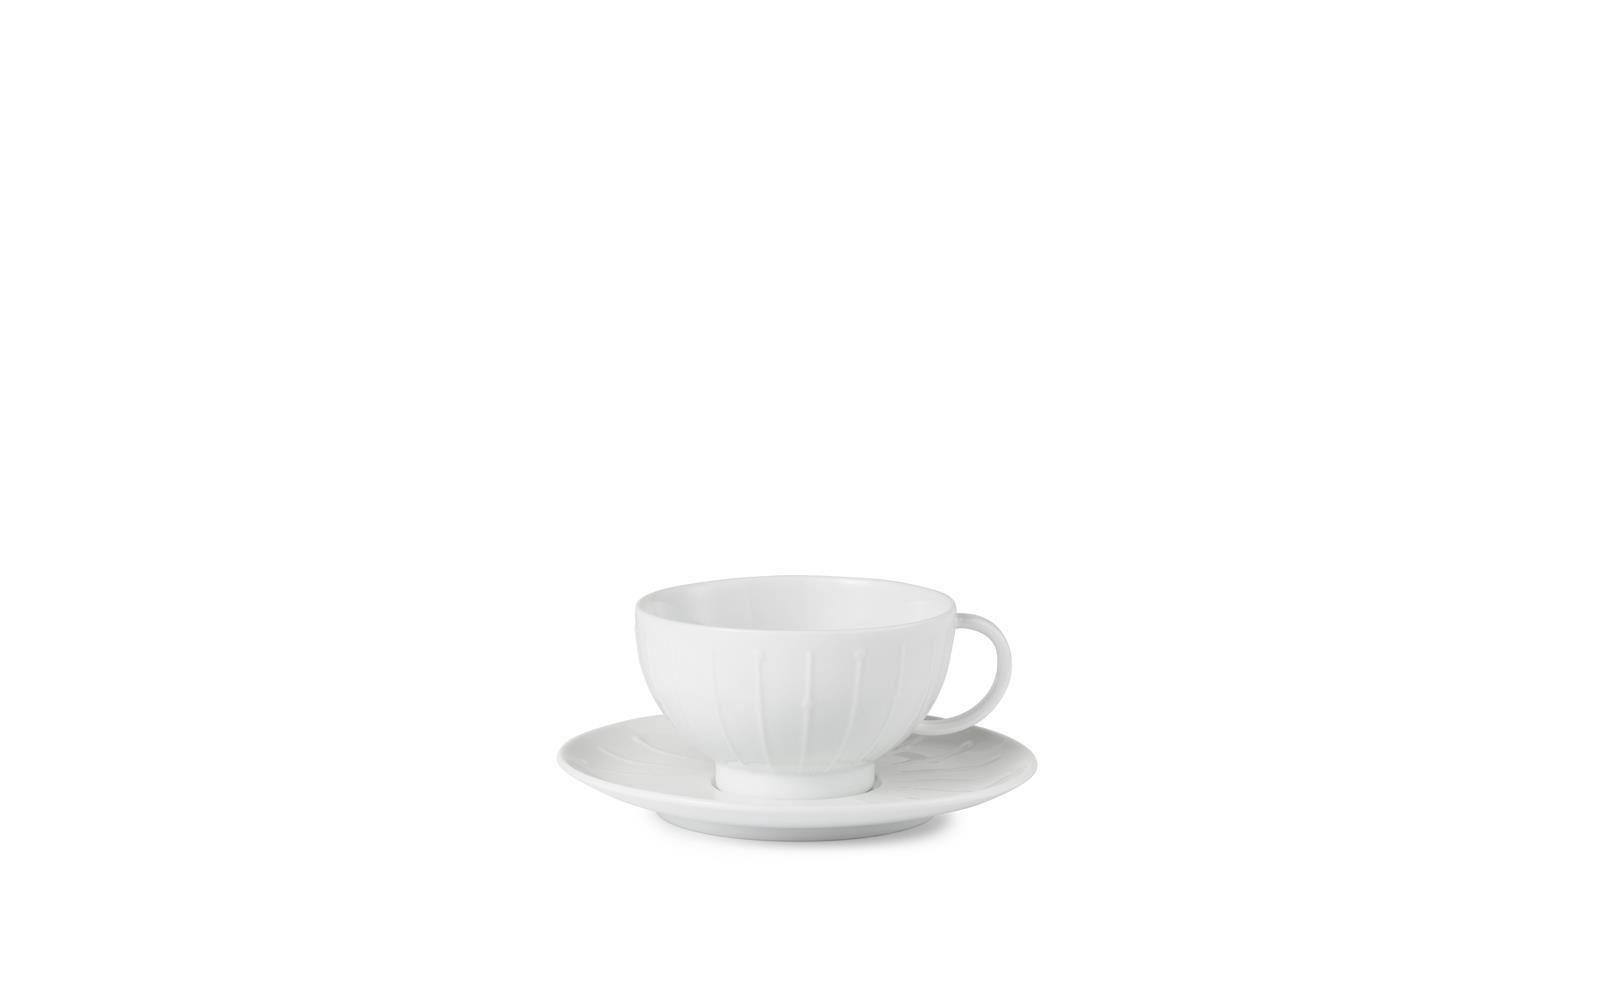 Banquet Teacup 19 cl1